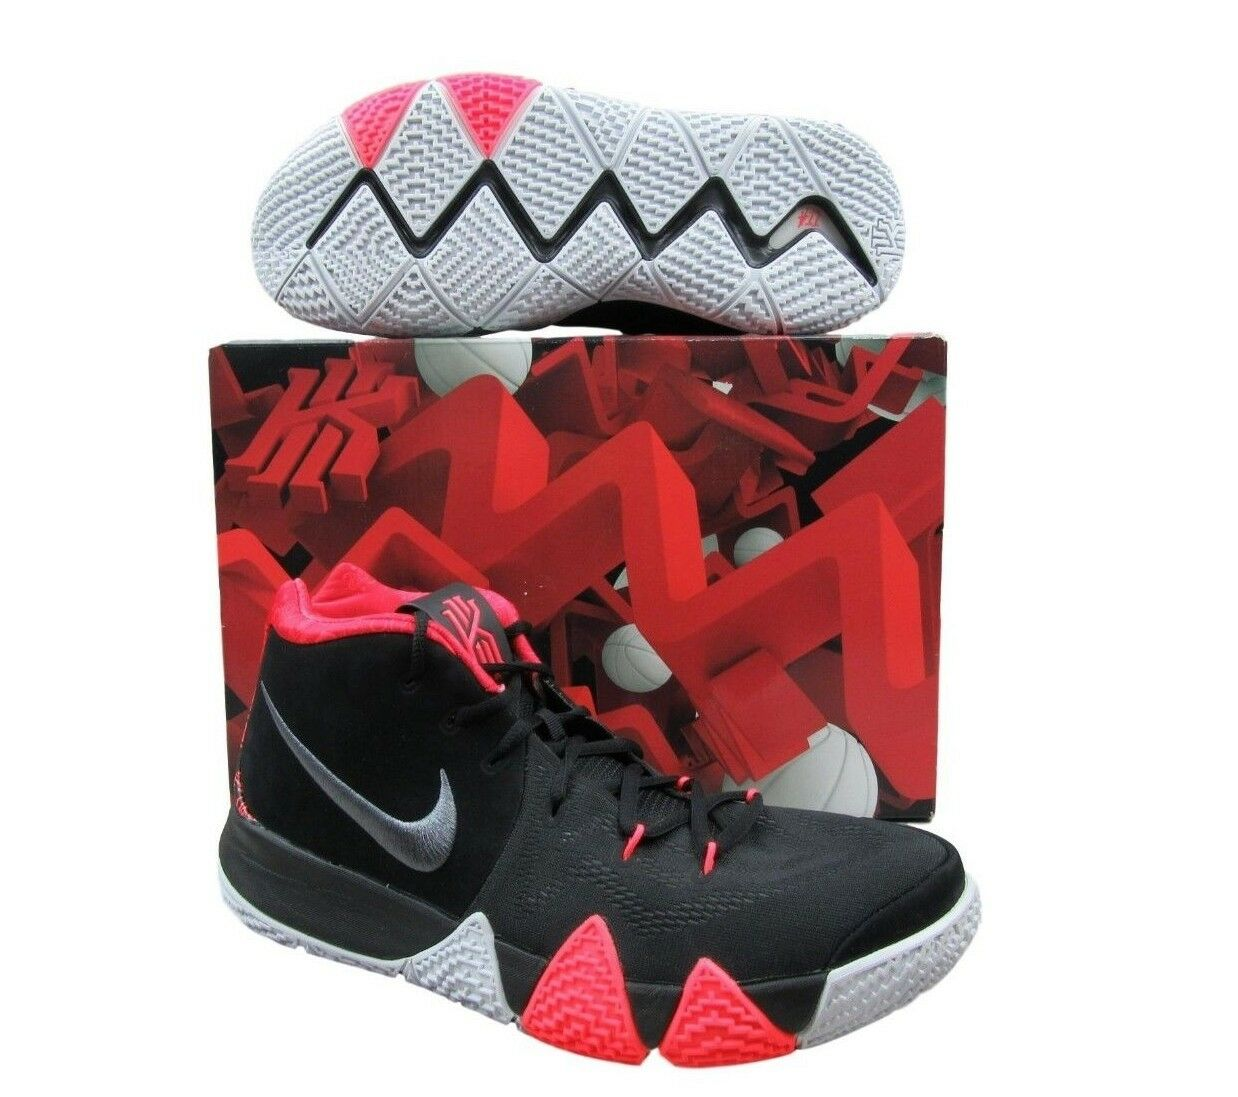 "01ba68530e7 Nike Kyrie 4 Black Crimson Basketball Shoes 10.5 ""41 for the Ages"" 943806  005"